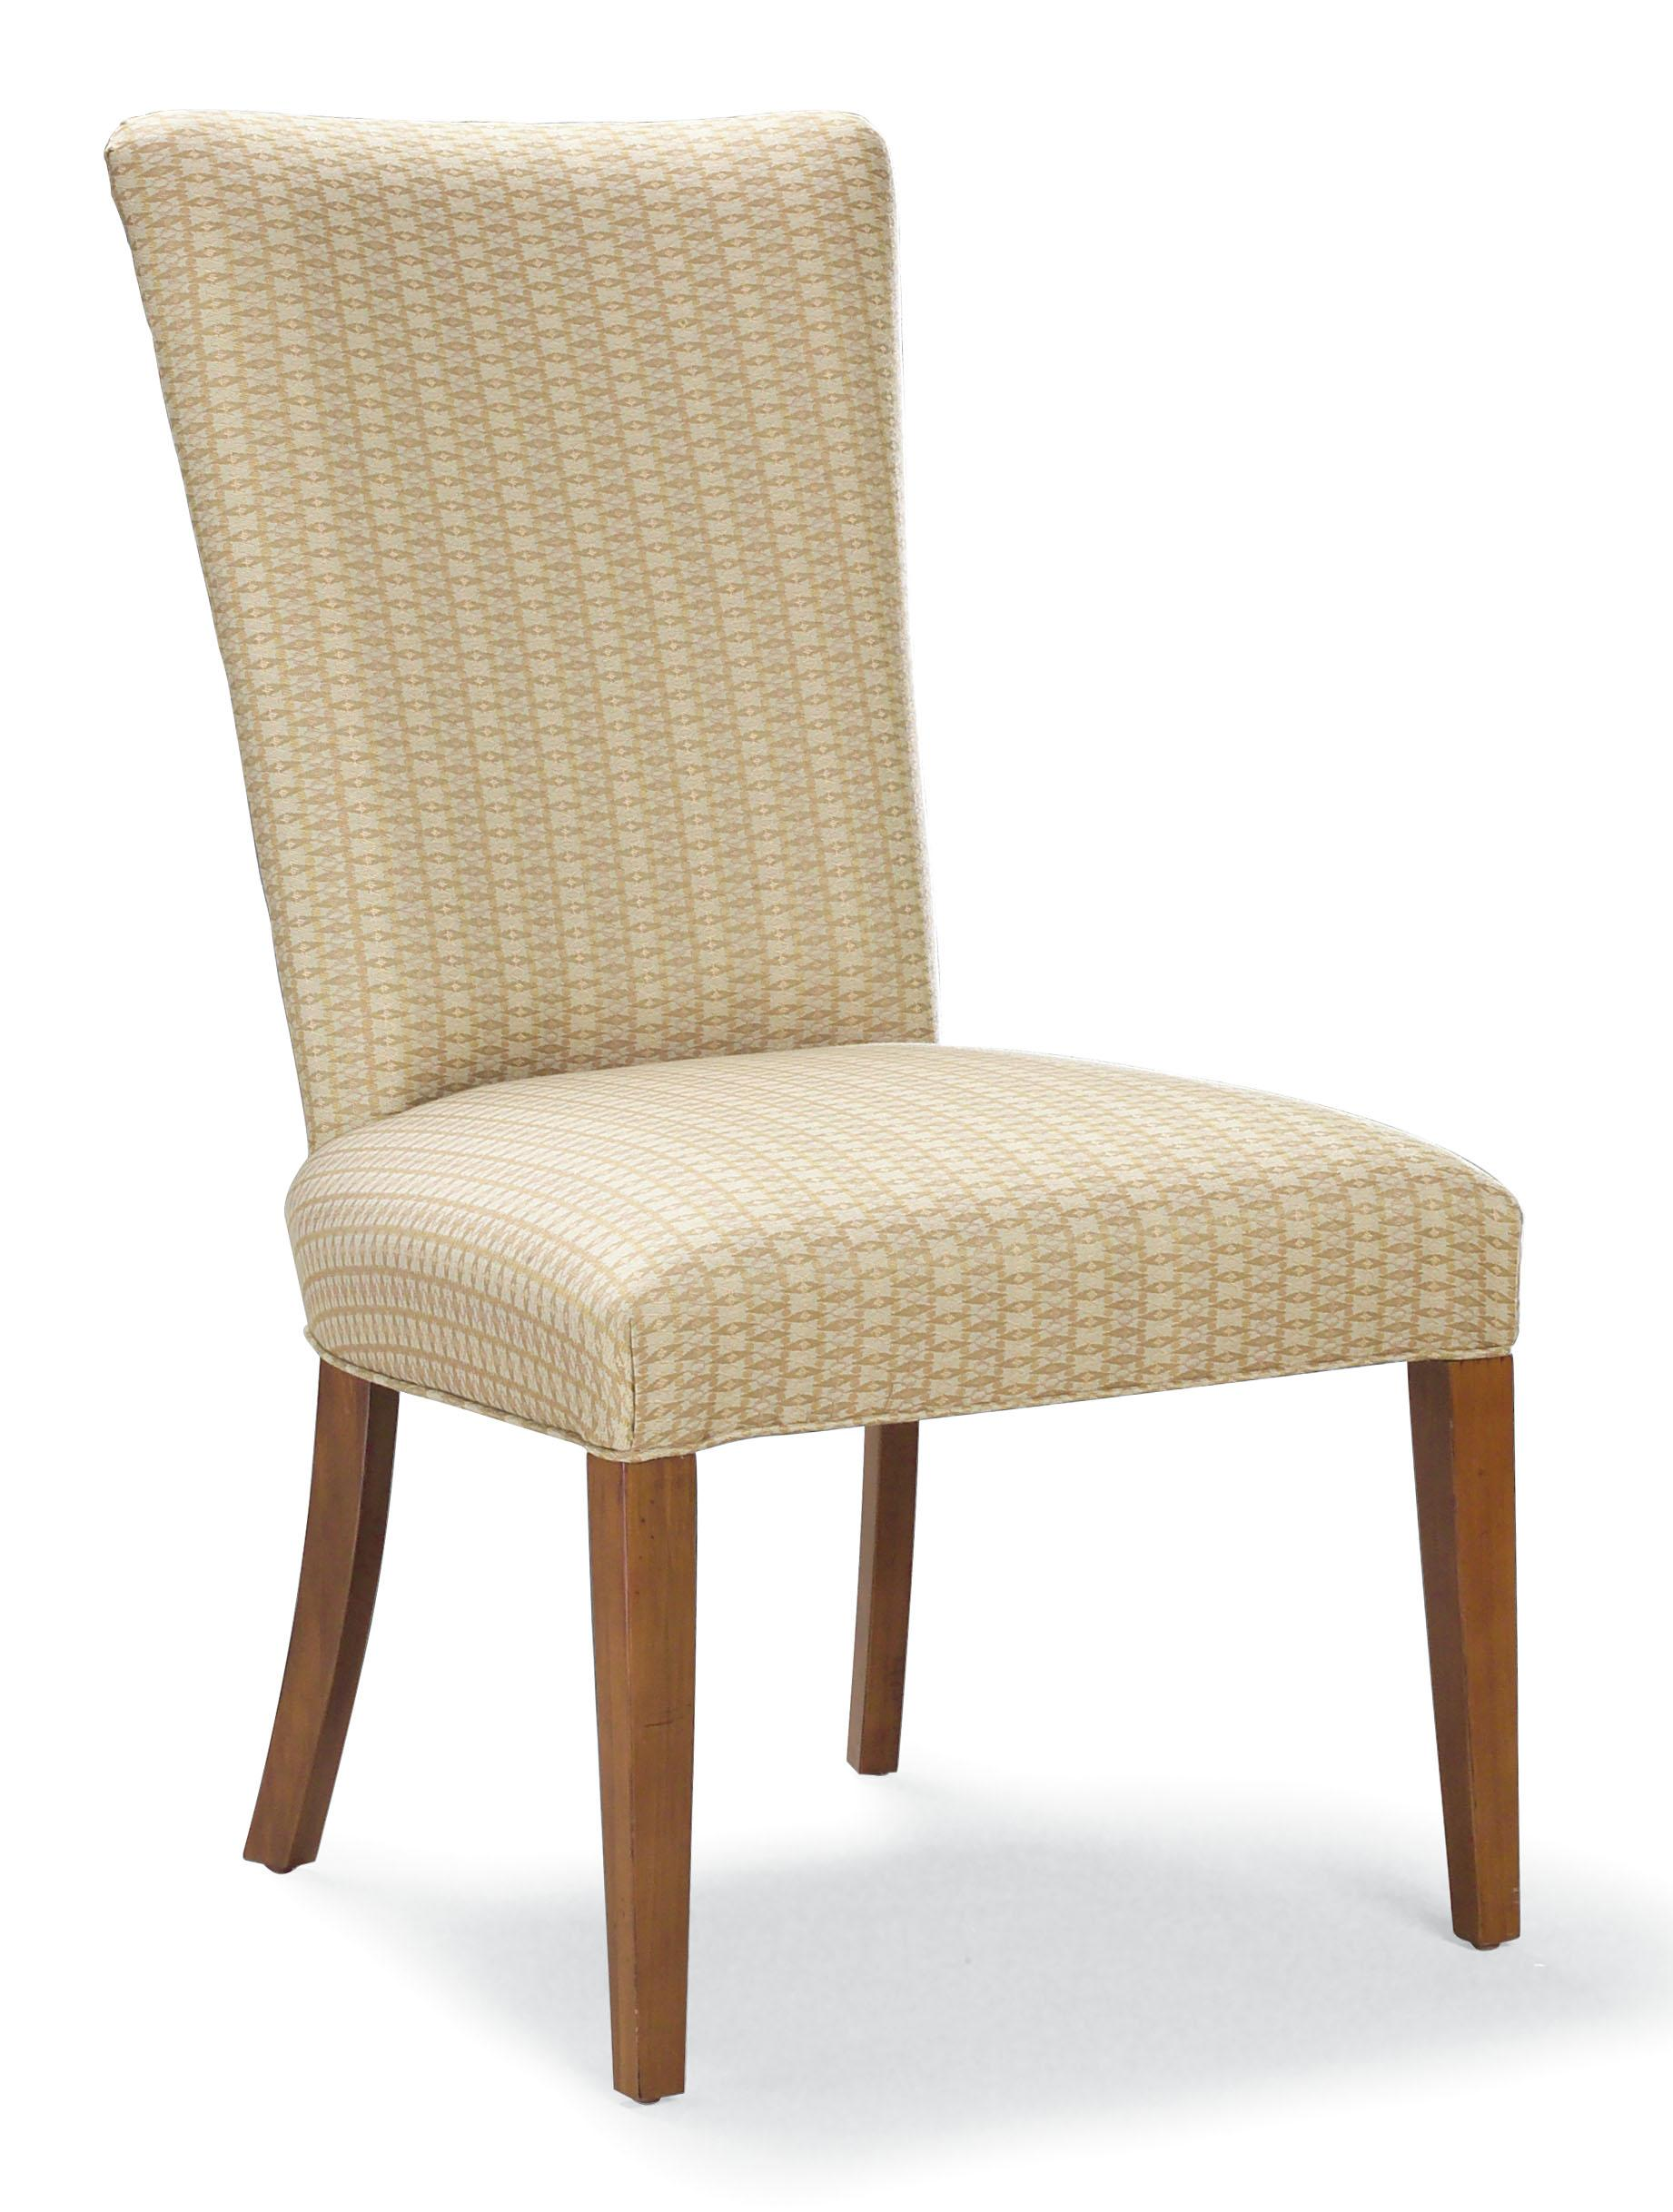 Fairfield Chairs Side Chair with Wood Legs - Item Number: 5408-05